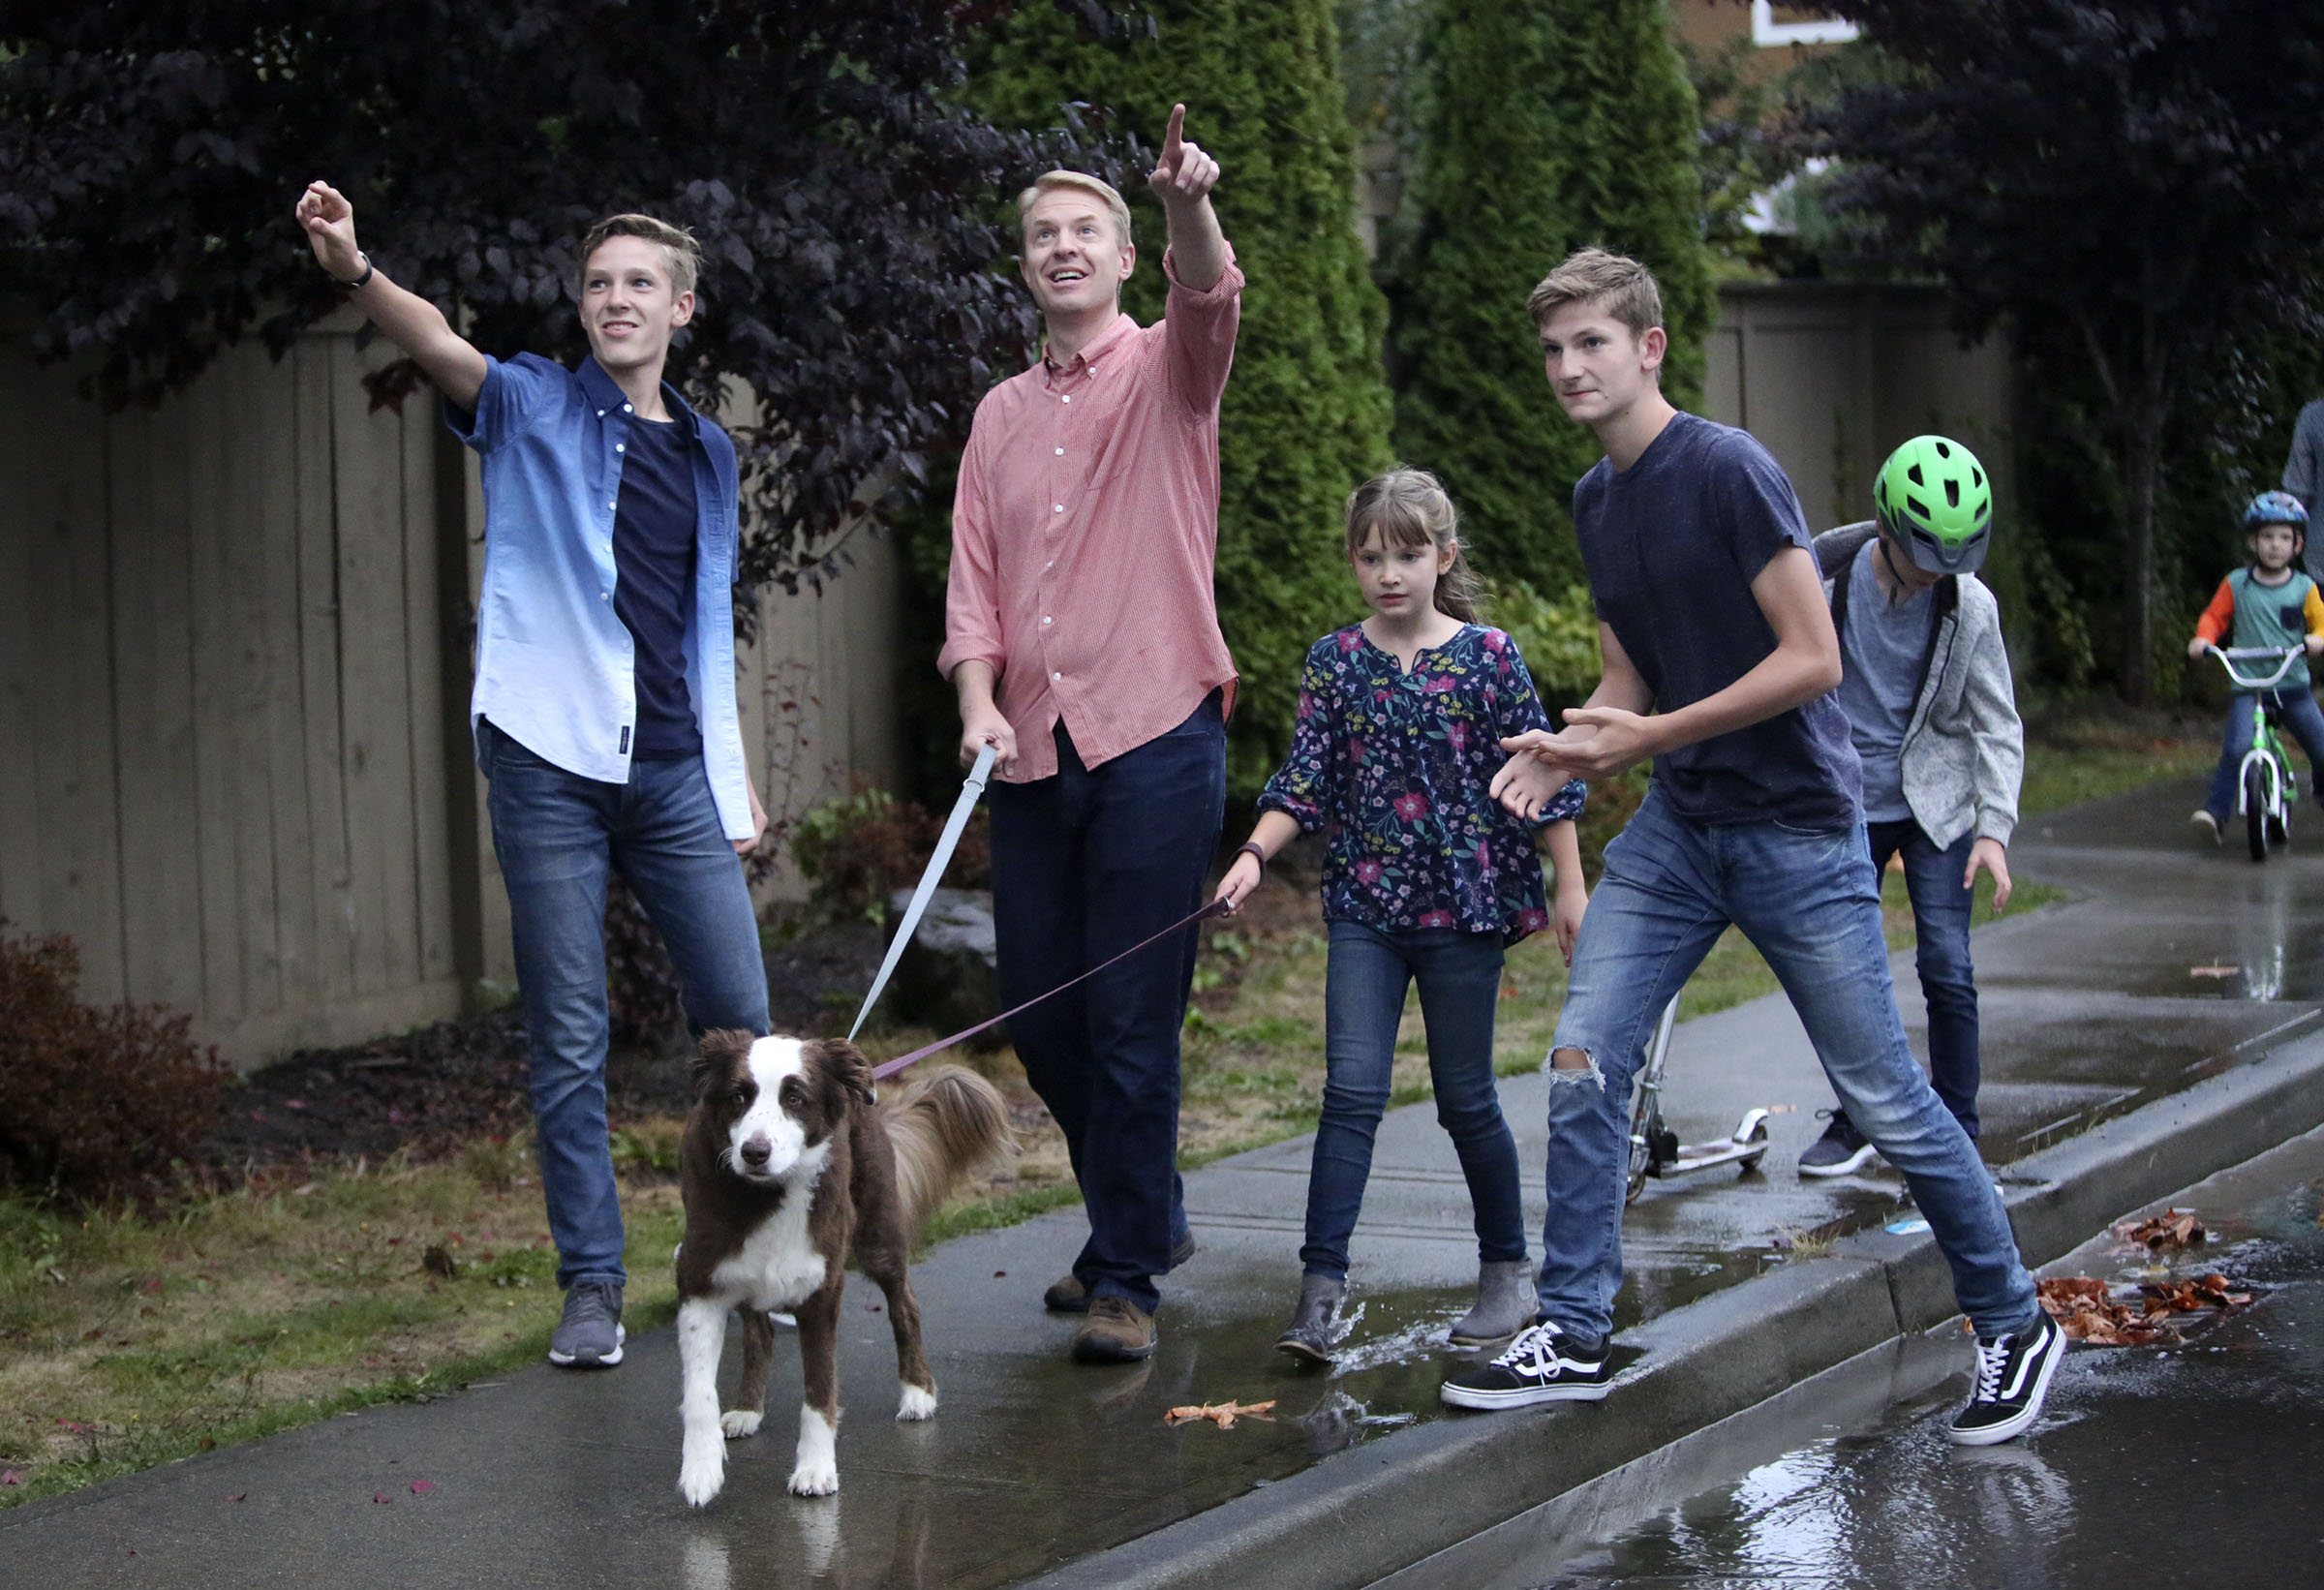 Jonathan, Justin, Emilia, and Ben Allen watch storm clouds in the distance while walking home with their dog Lou in Renton, Wash., on Friday, Sept. 14, 2018.